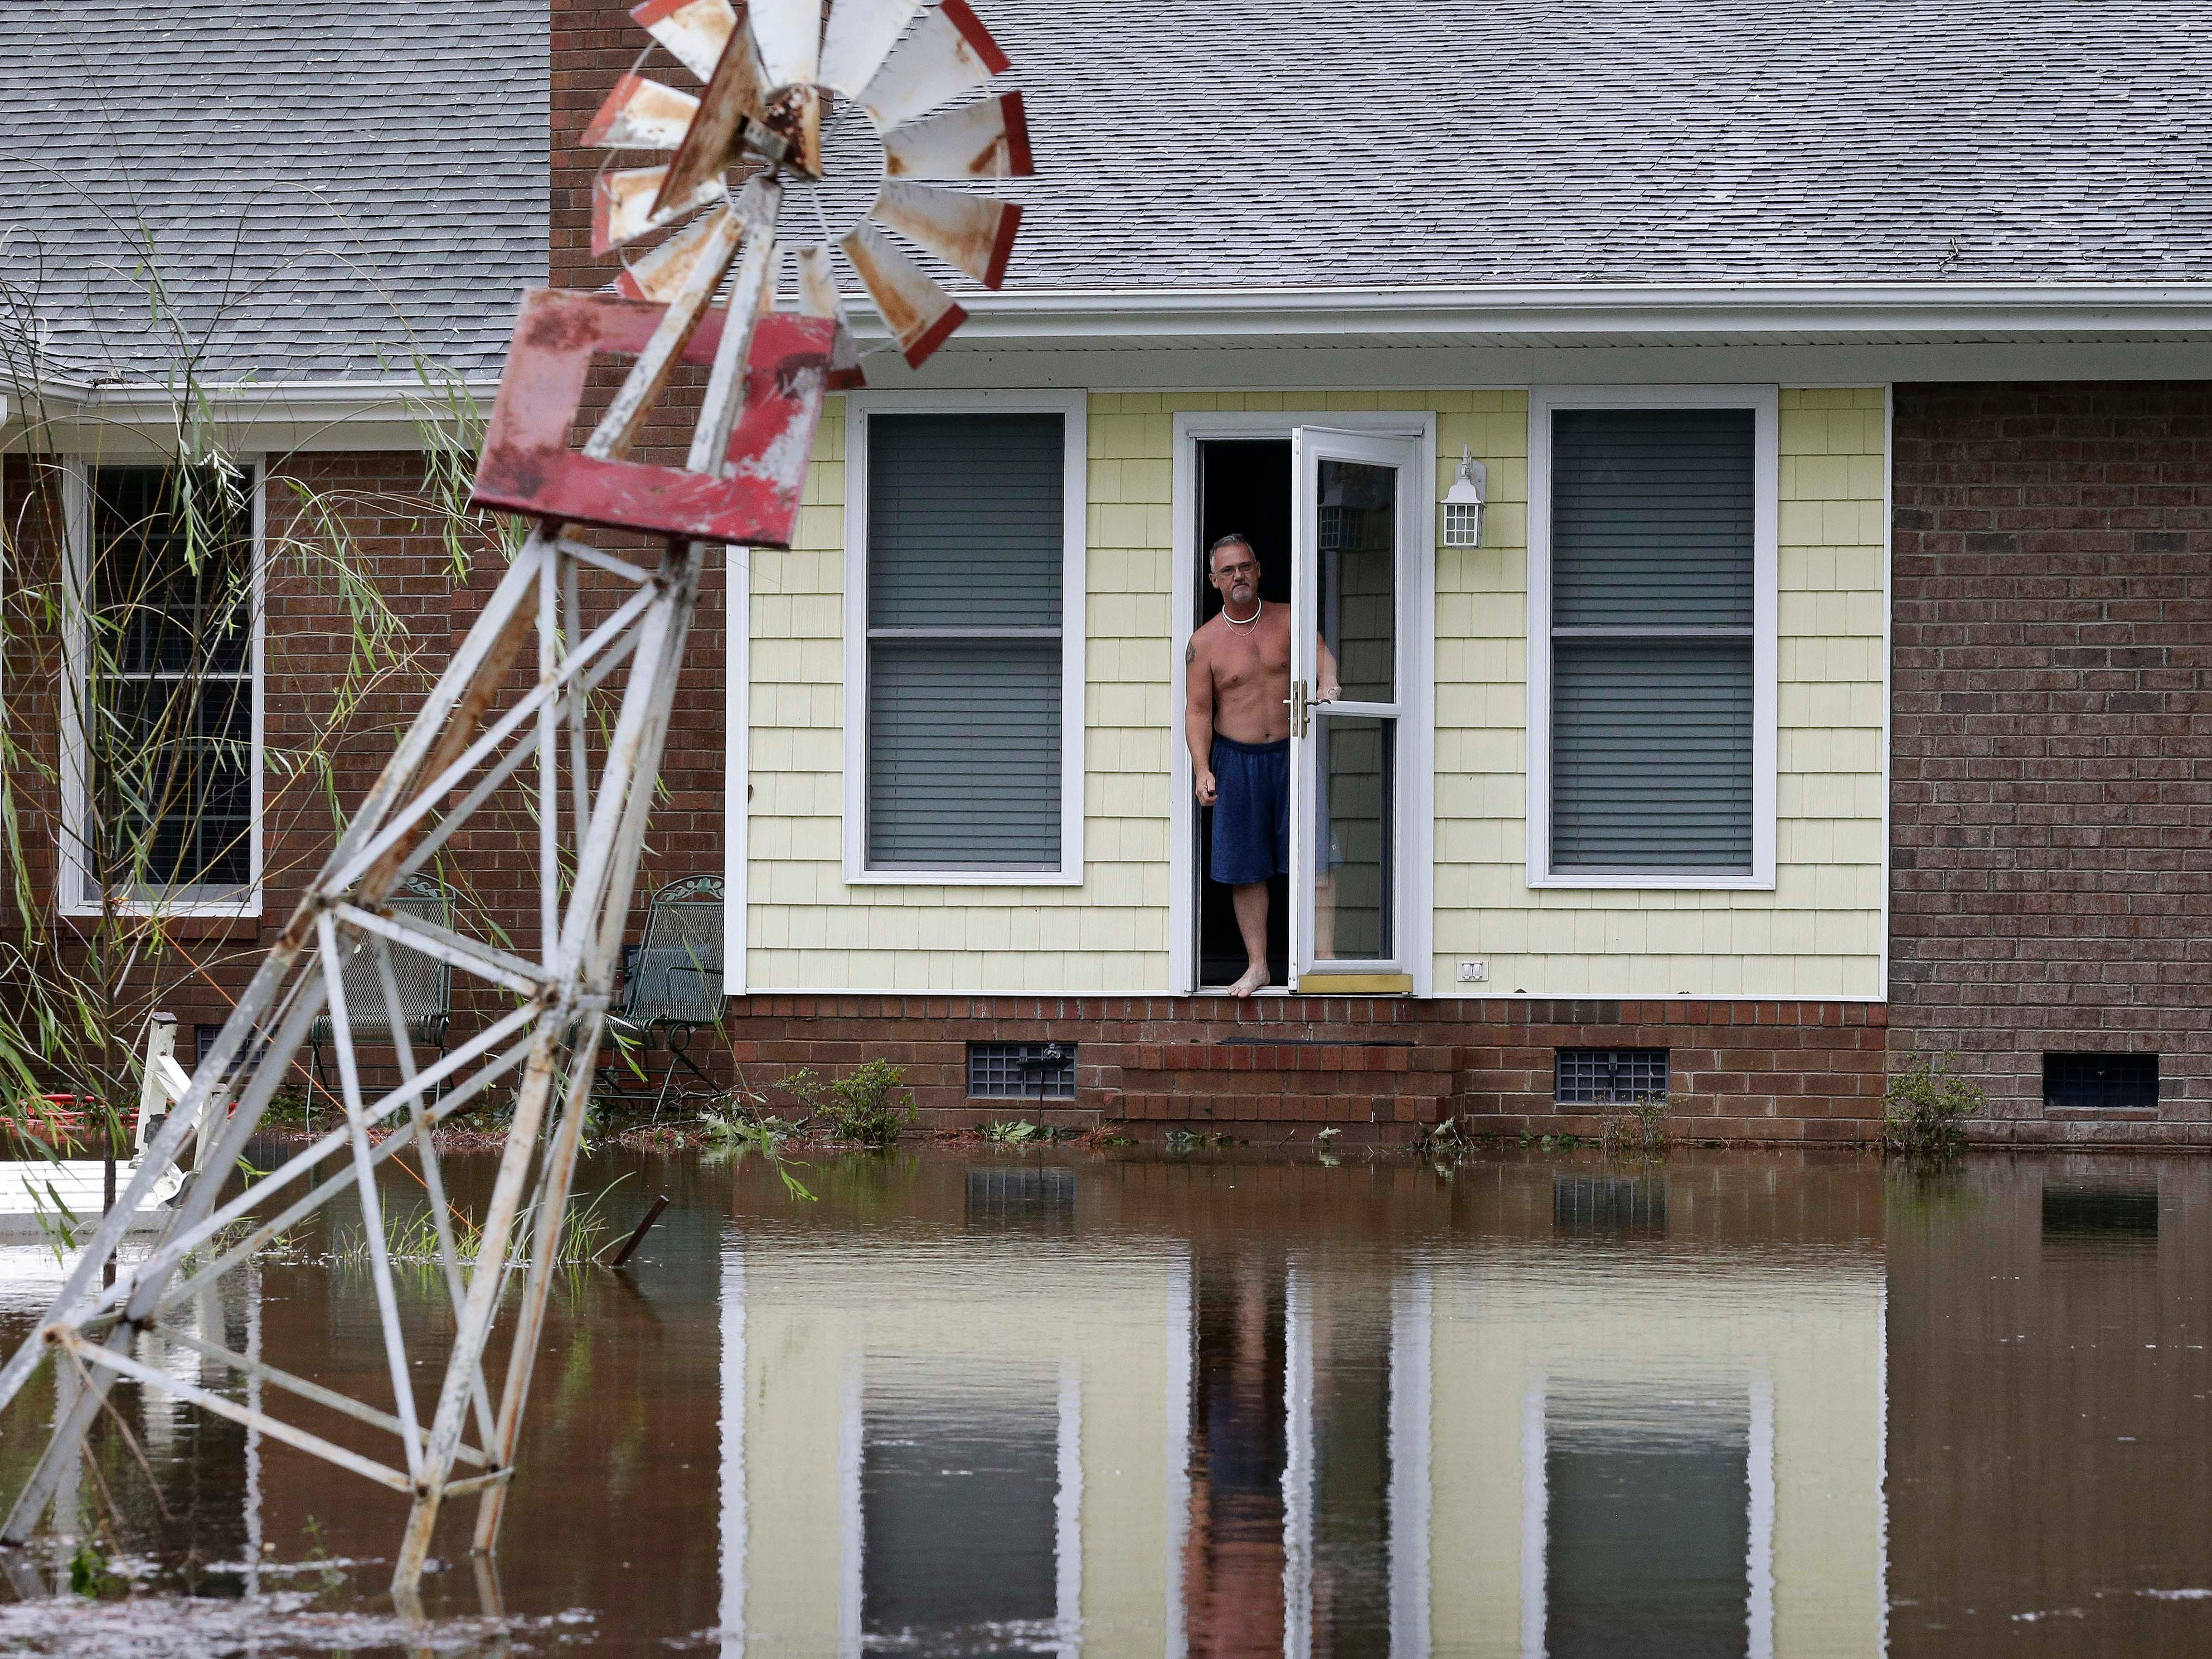 A man peers from his flooded home in Lumberton, N.C., Sunday, Sept. 16, 2018, in the aftermath of Hurricane Florence.